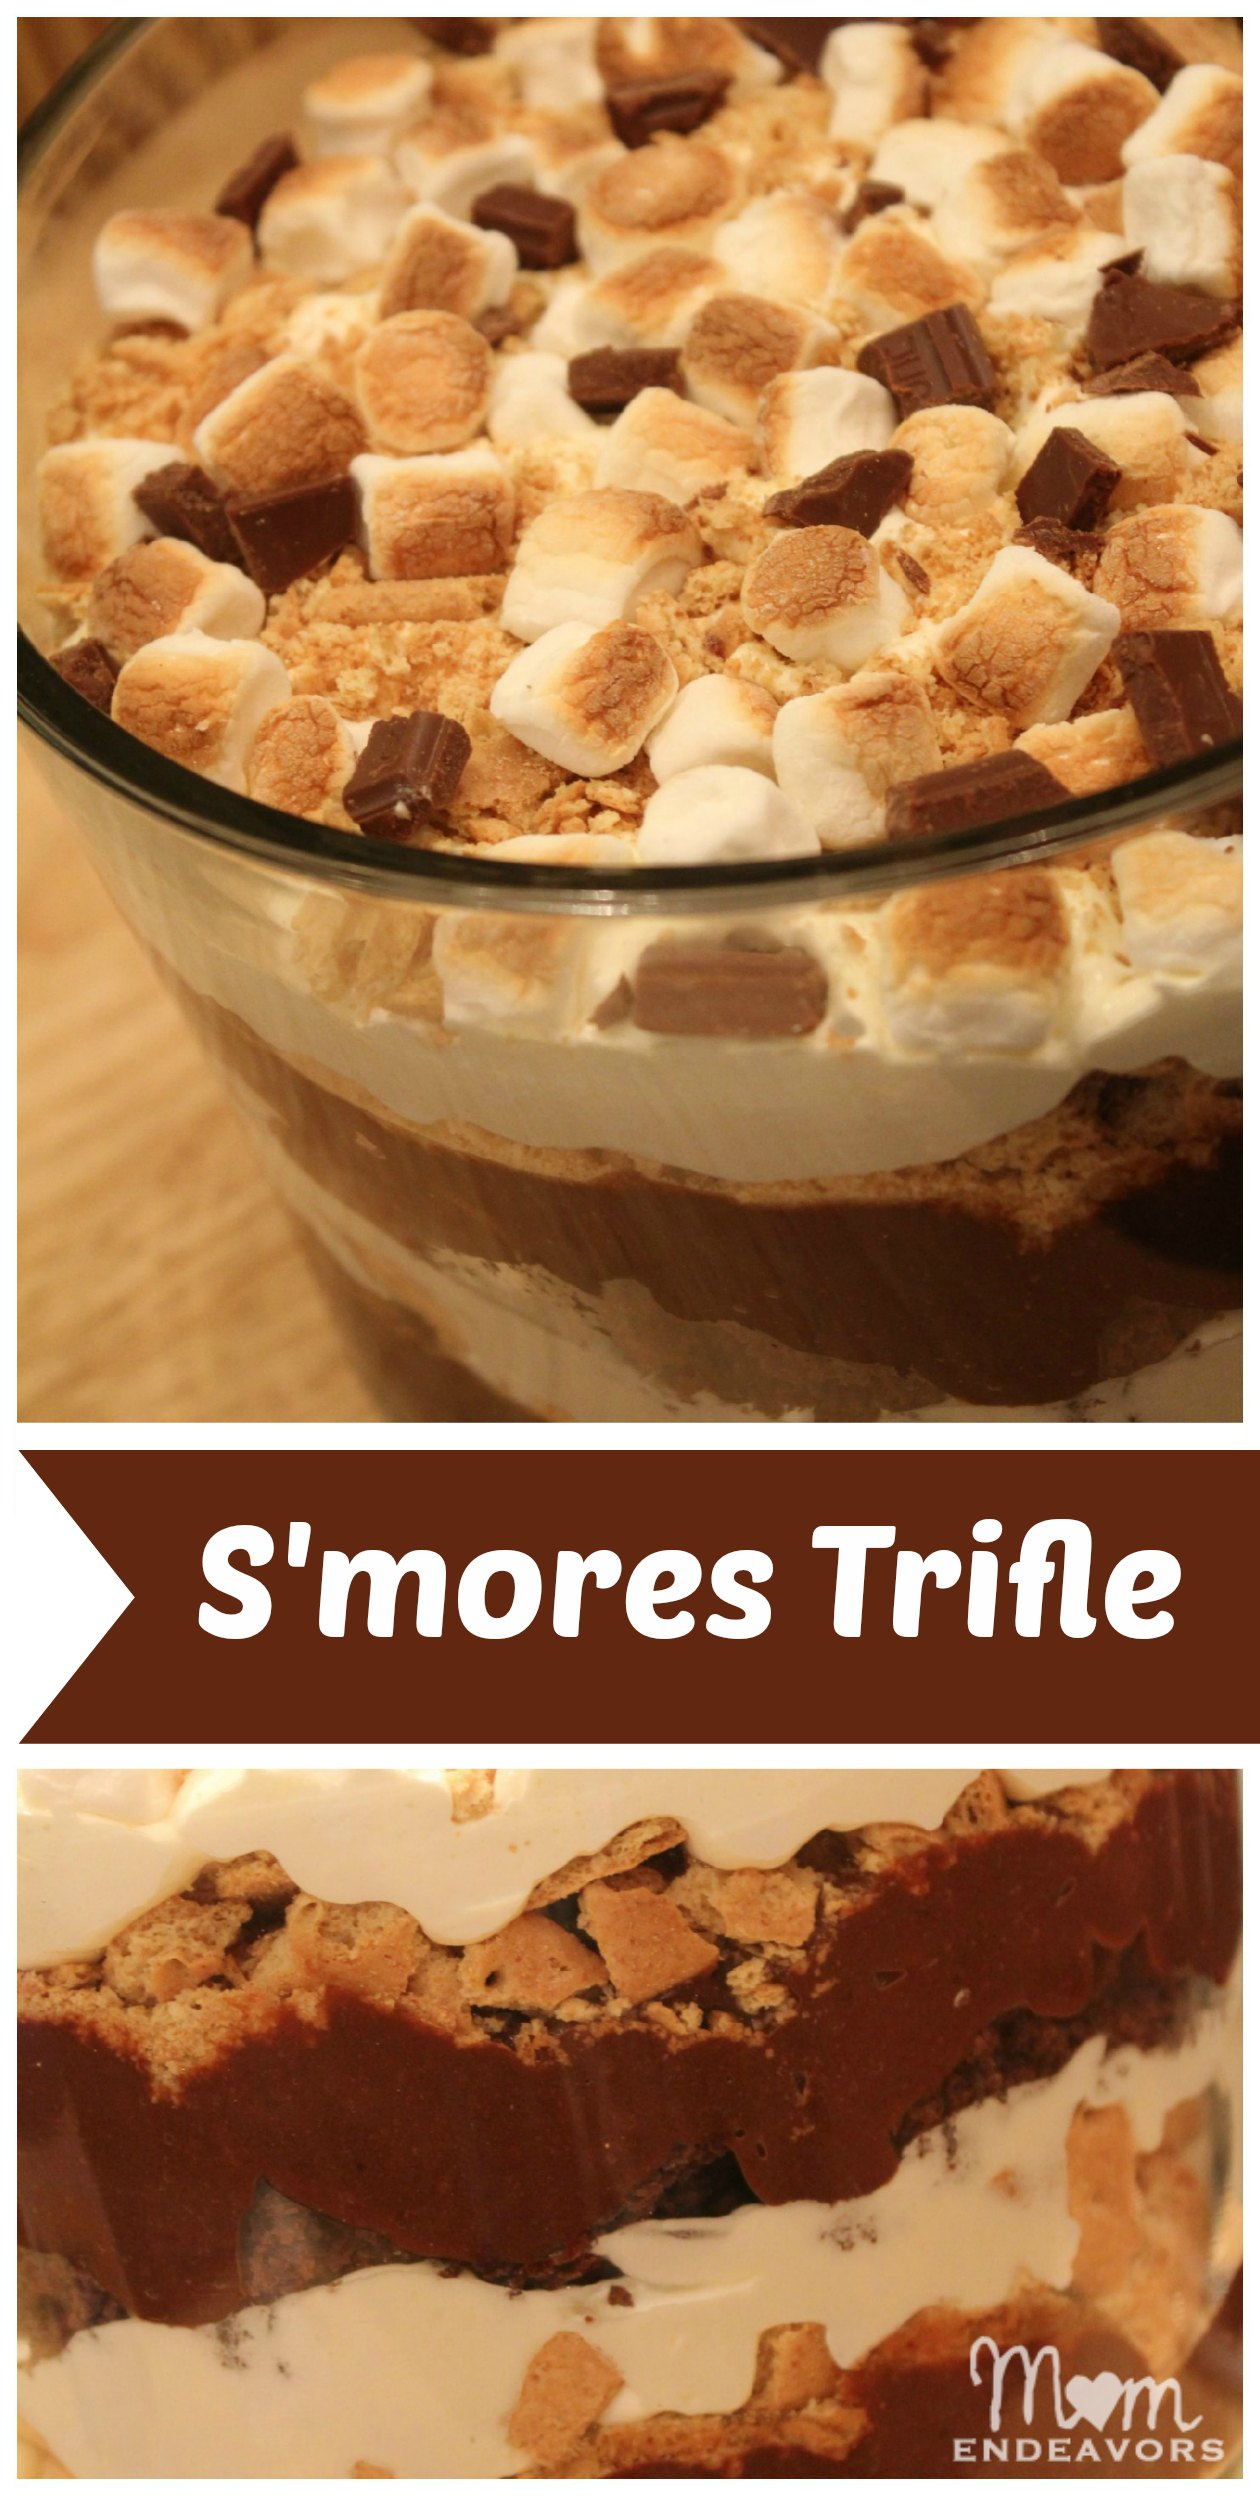 Brownie S'mores Trifle